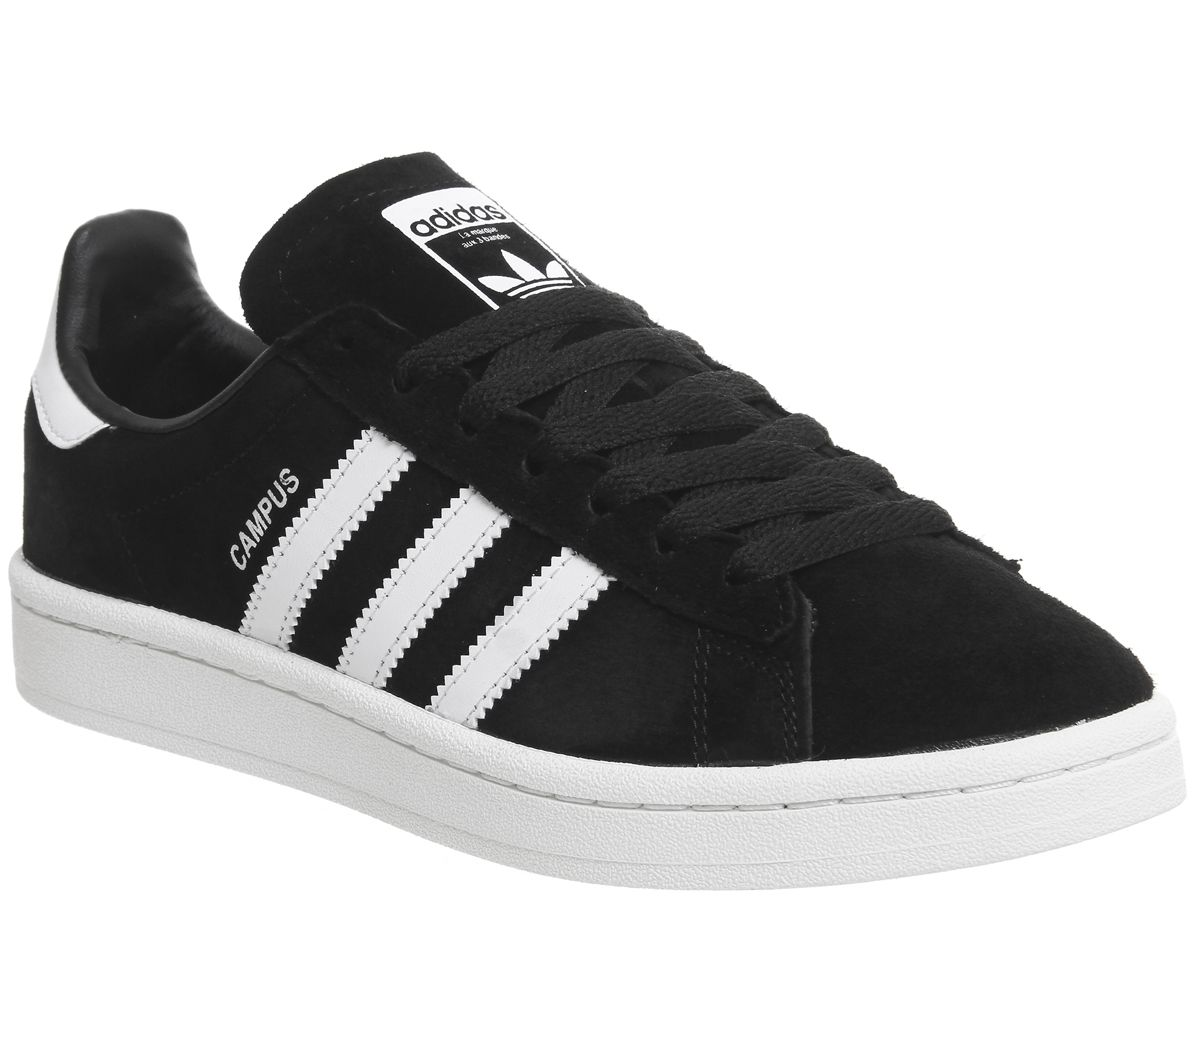 huge selection of 8dd81 f846d adidas Campus Black White - Unisex Sports